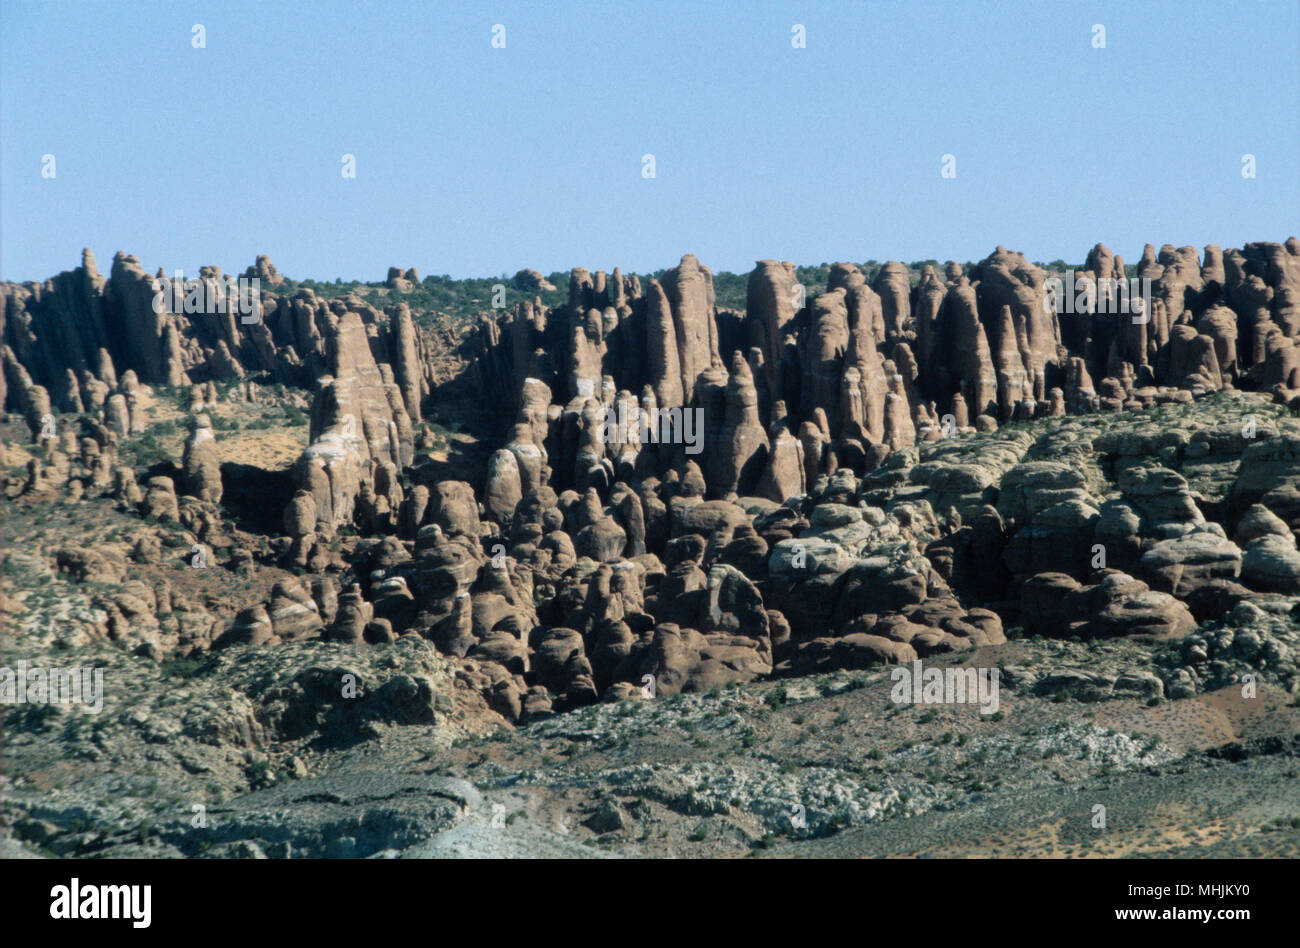 The long, needle-like pillars of sandstone make up both the maze Andy the needles sections of Canyonland National Park in Utah. - Stock Image